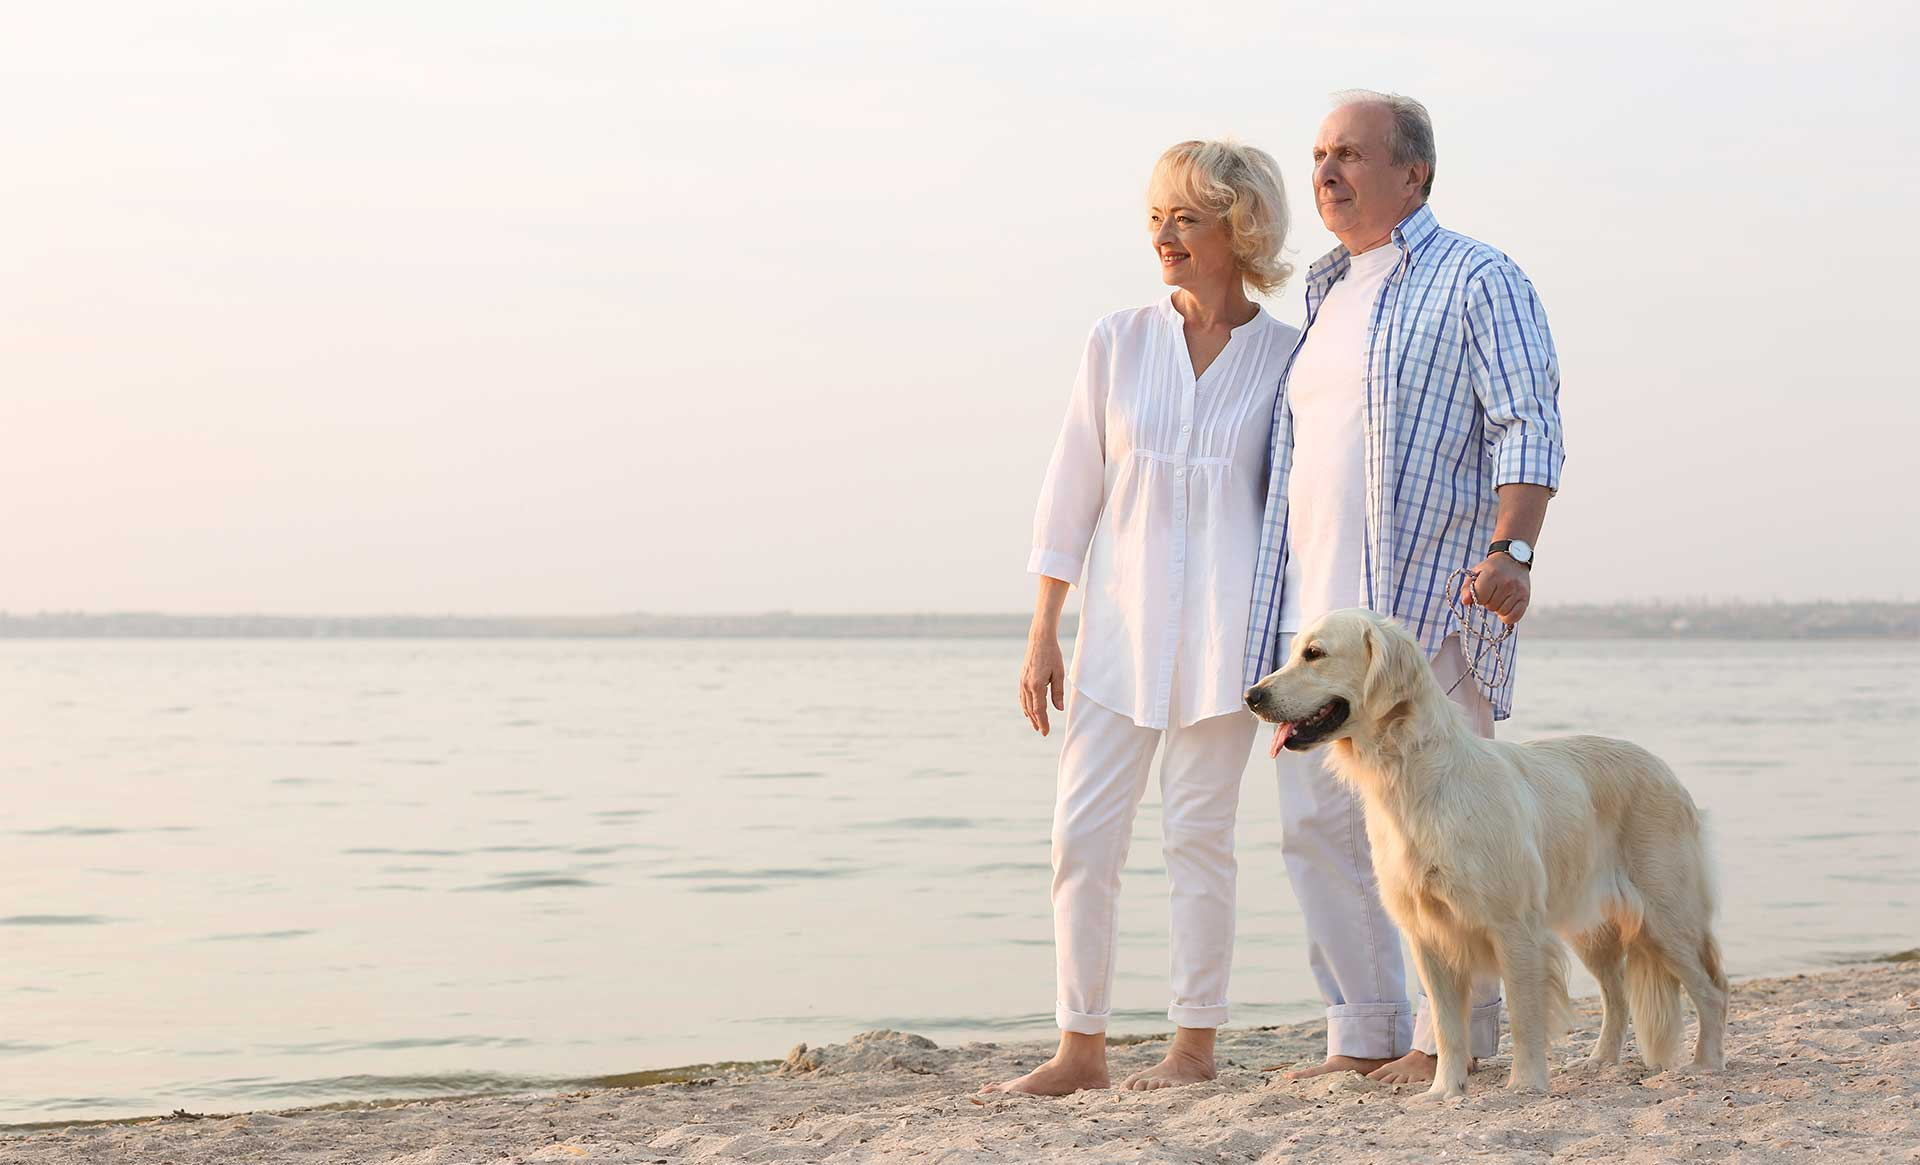 PENSIONS & RETIREMENT PLANNING